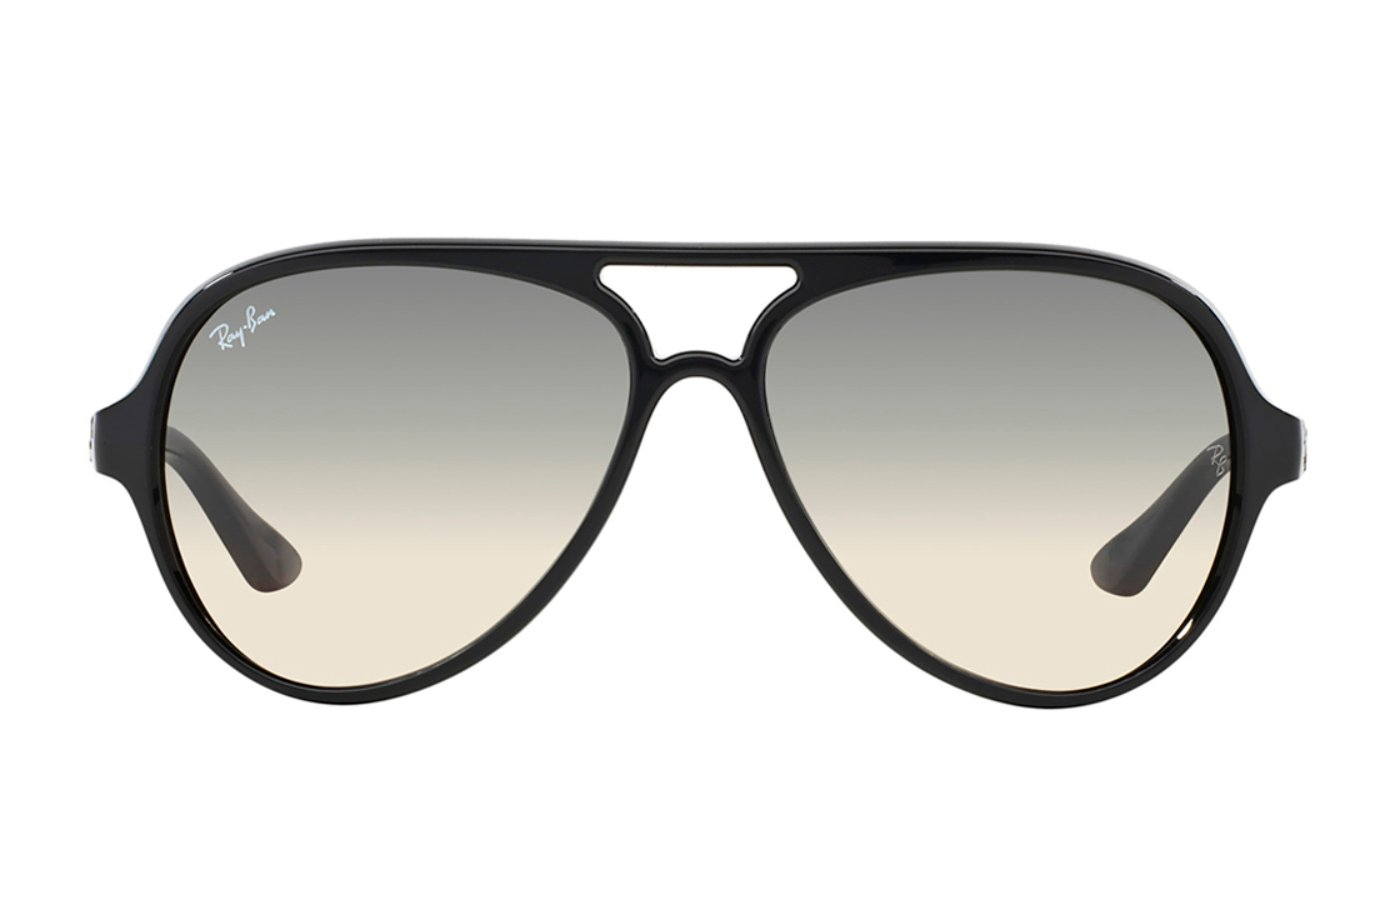 RAY-BAN CATS 5000 0RB4125 59 601/32 BLACK